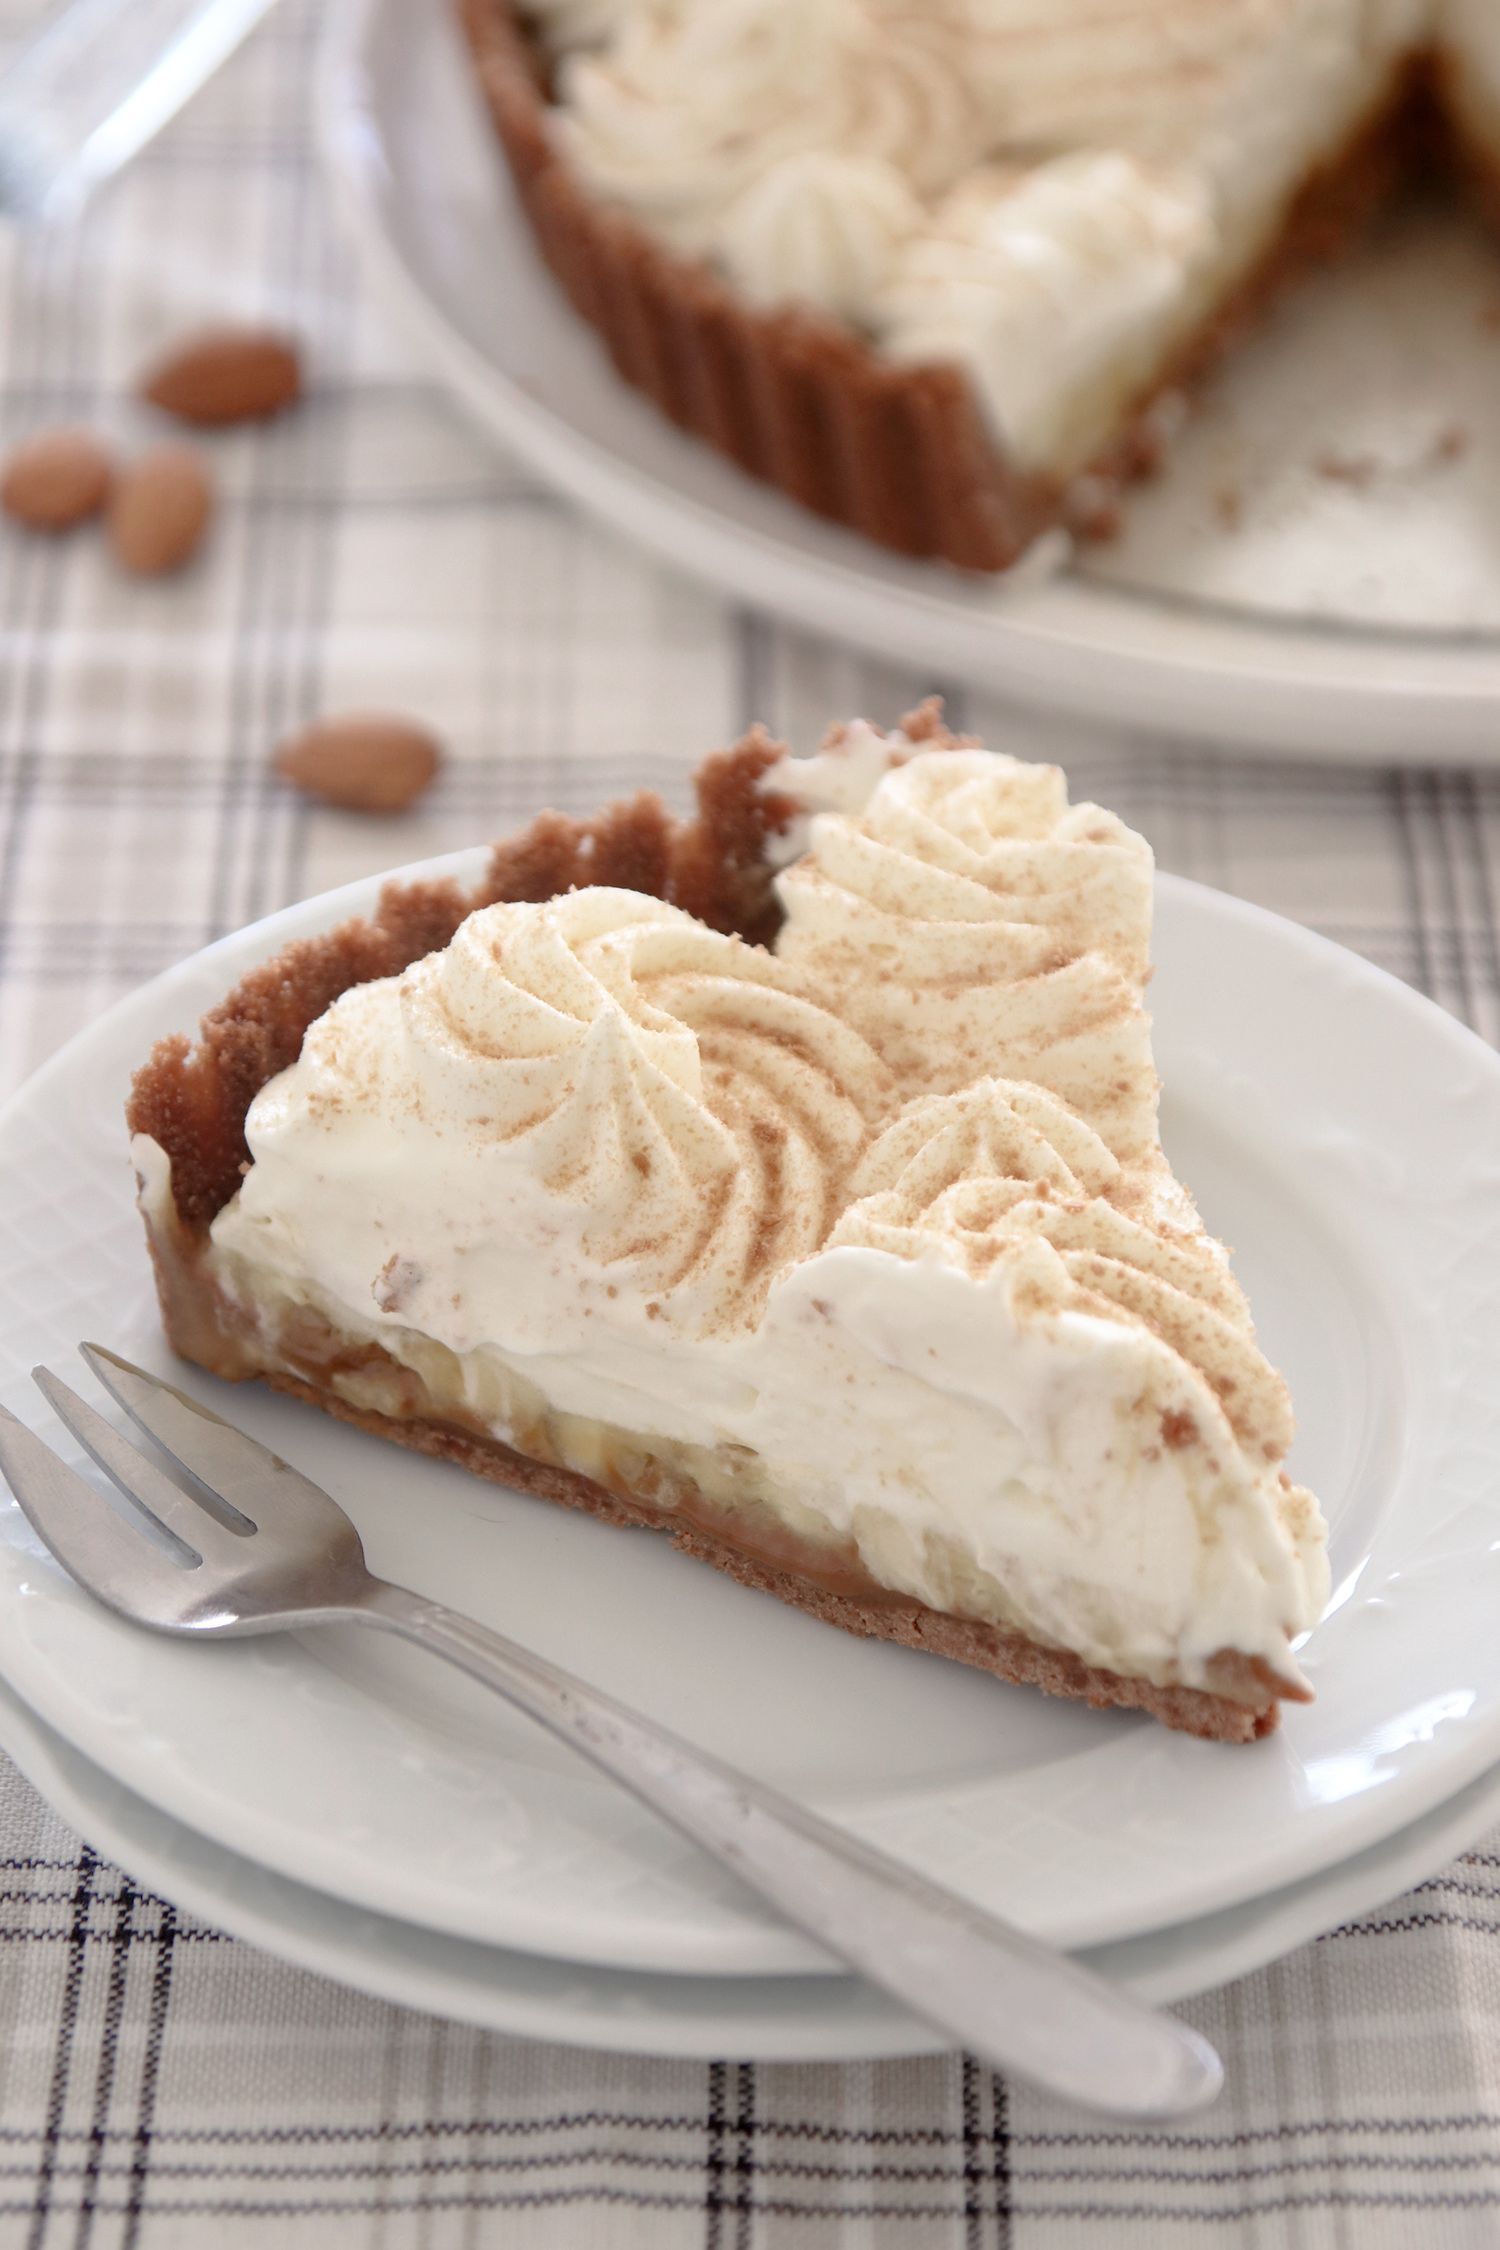 No Bake Banana Cream Pie with Dulce de Leche and Mascarpone